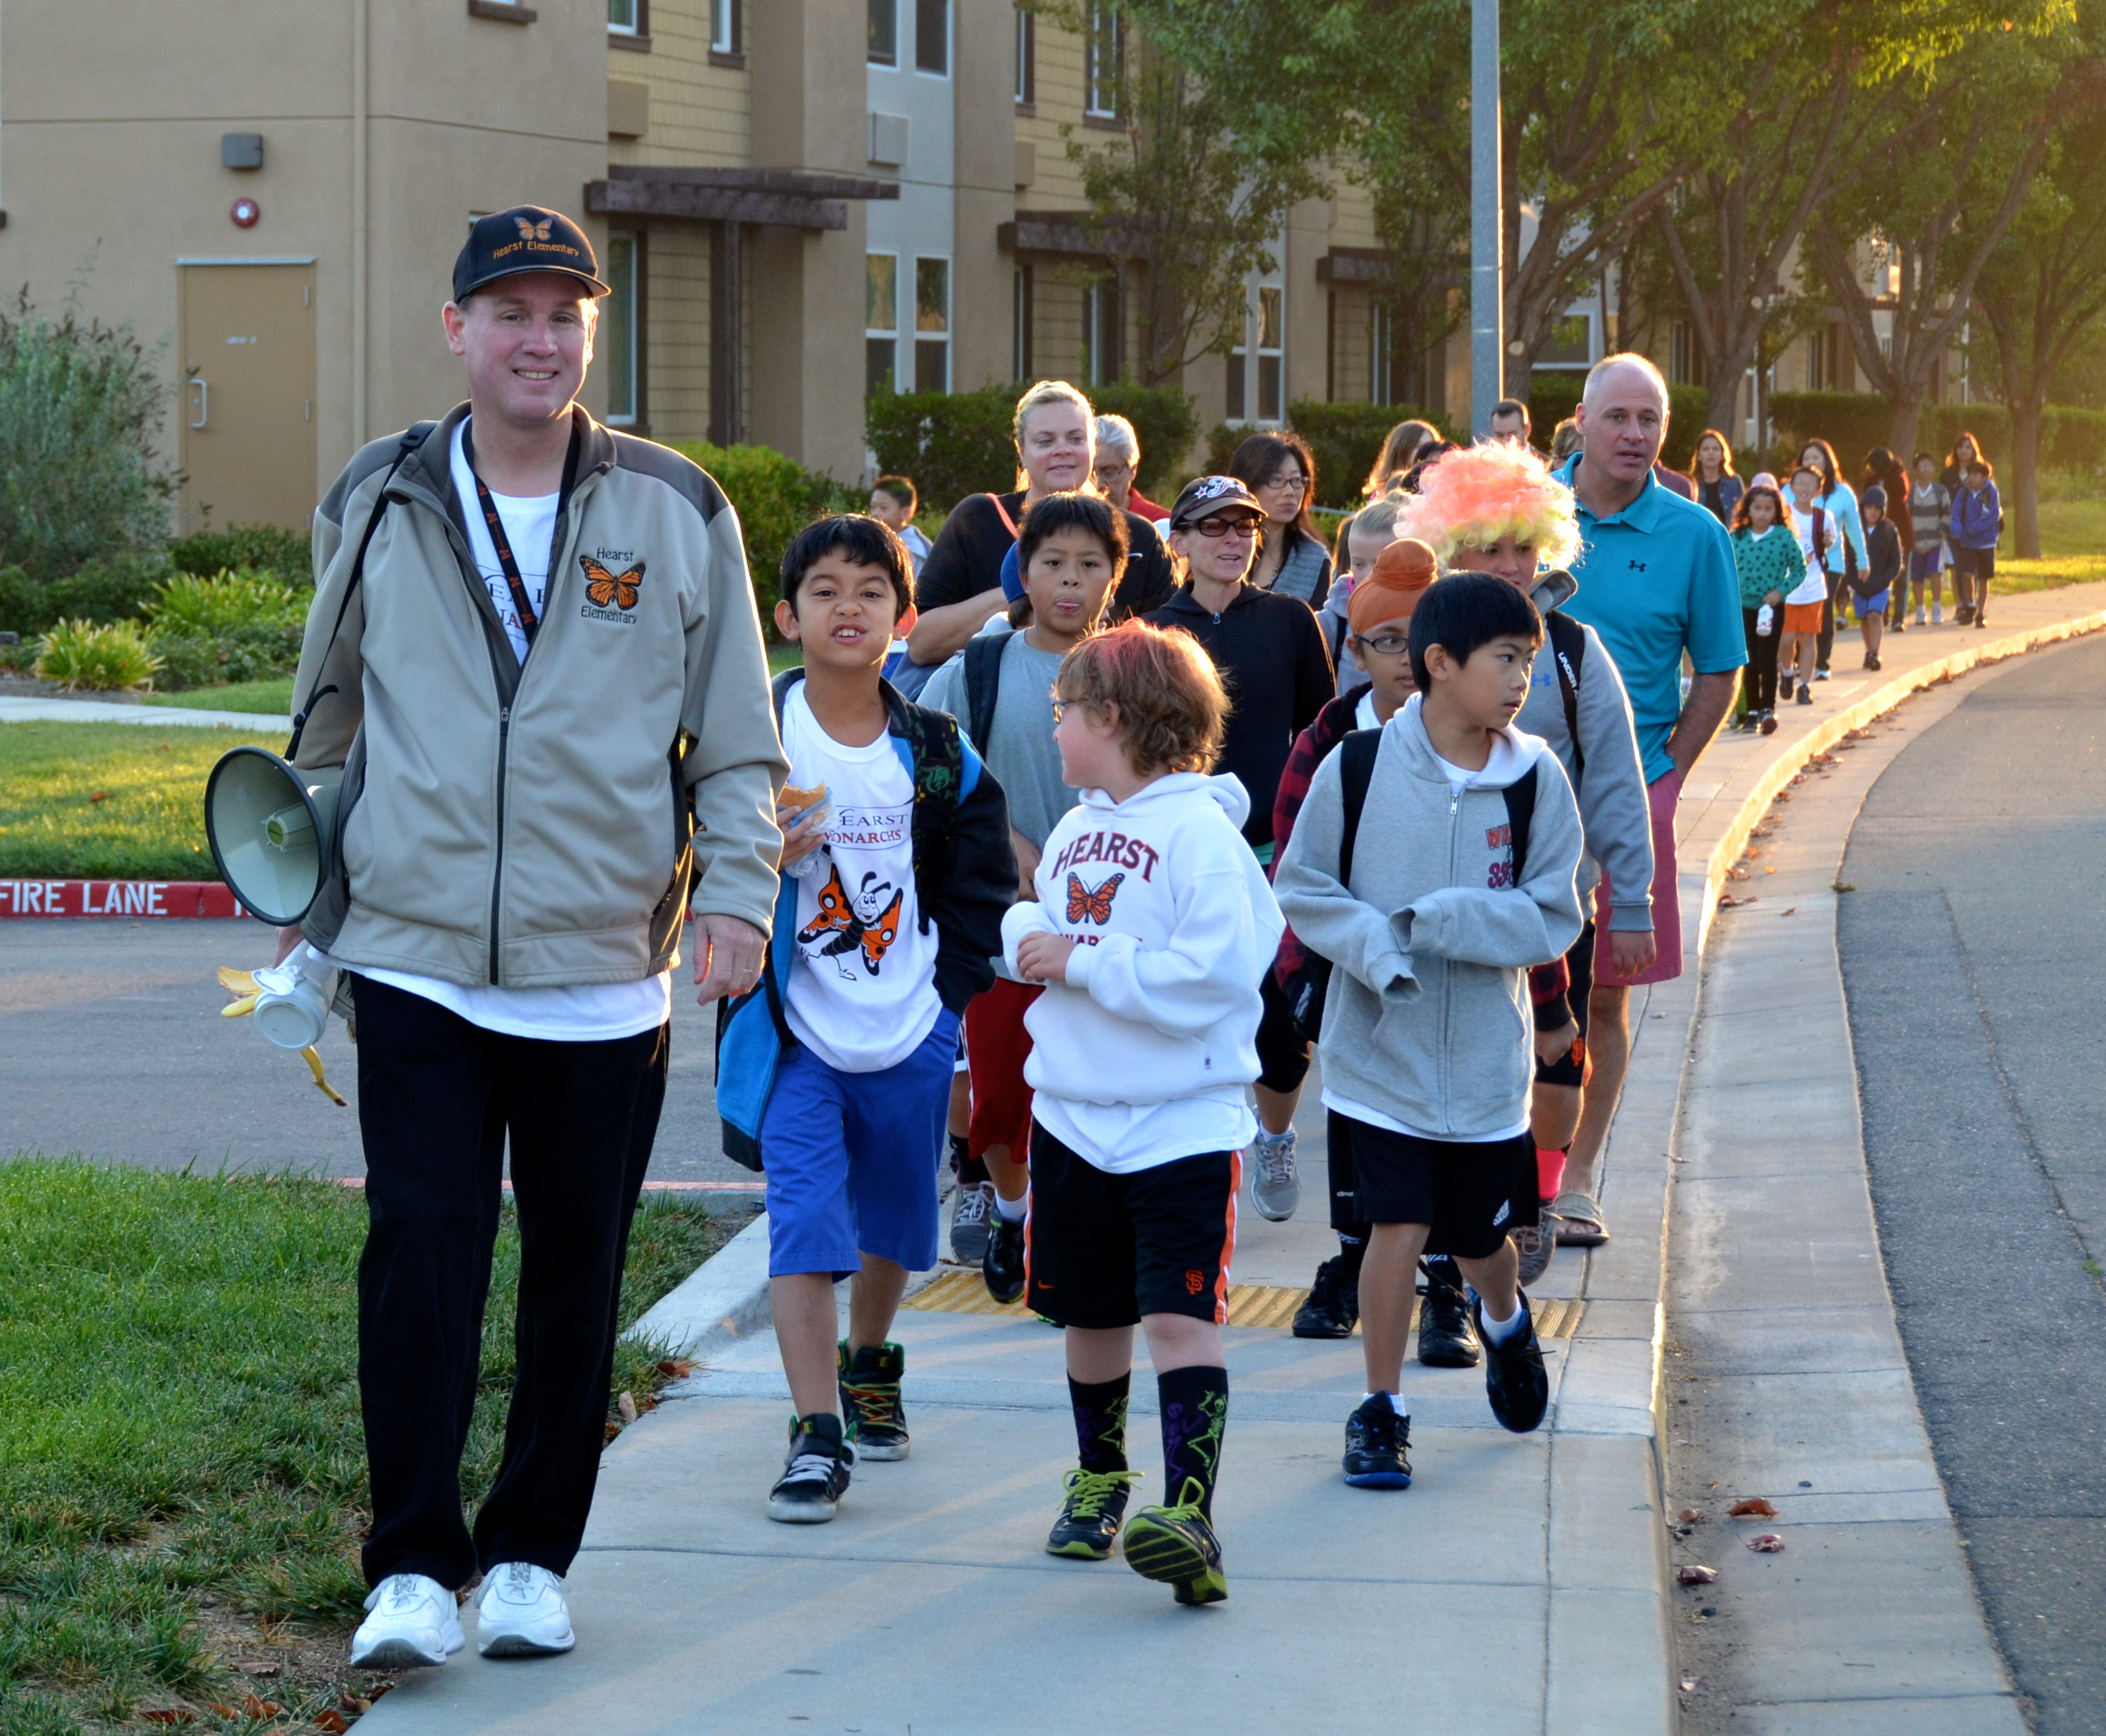 Principal Kuhfal and Hearst students on Walk to School Day